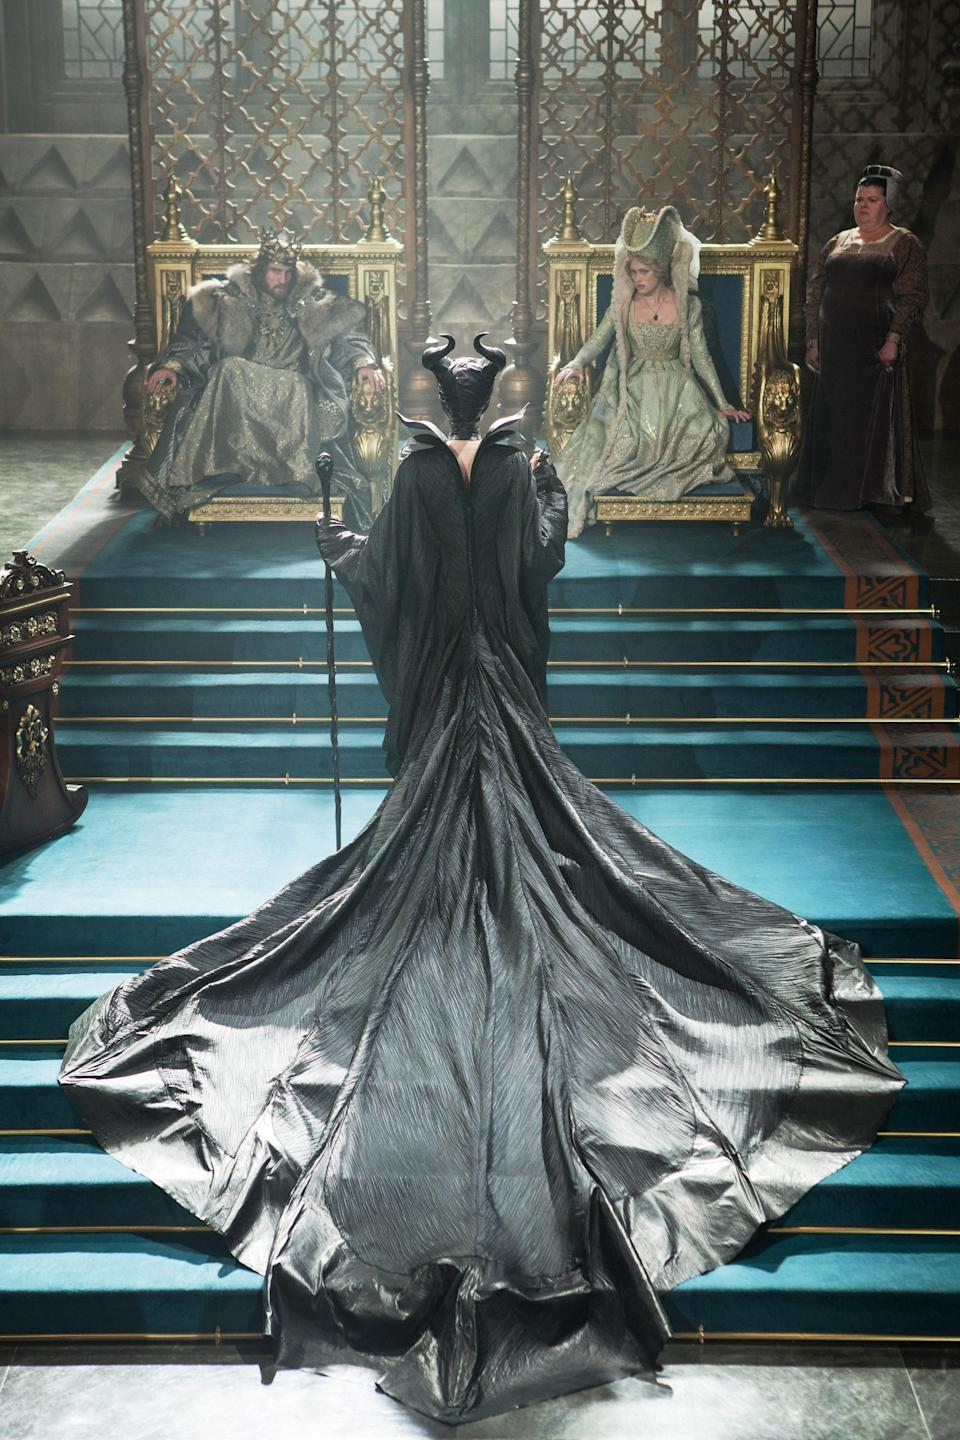 """<p>The other side of Sleeping Beauty, we get the backstory on the allegedly evil fairy Maleficent, played by Angelina Jolie. Turns out, there's a lot more to her casting that sleeping spell than being envious of the young Aurora, and we learn of the heartbreaking betrayal the black-clad antihero has endured.</p> <p><a href=""""https://disneyplus.bn5x.net/VryLJ"""" rel=""""nofollow noopener"""" target=""""_blank"""" data-ylk=""""slk:Available on Disney+"""" class=""""link rapid-noclick-resp""""><em>Available on Disney+</em></a></p>"""